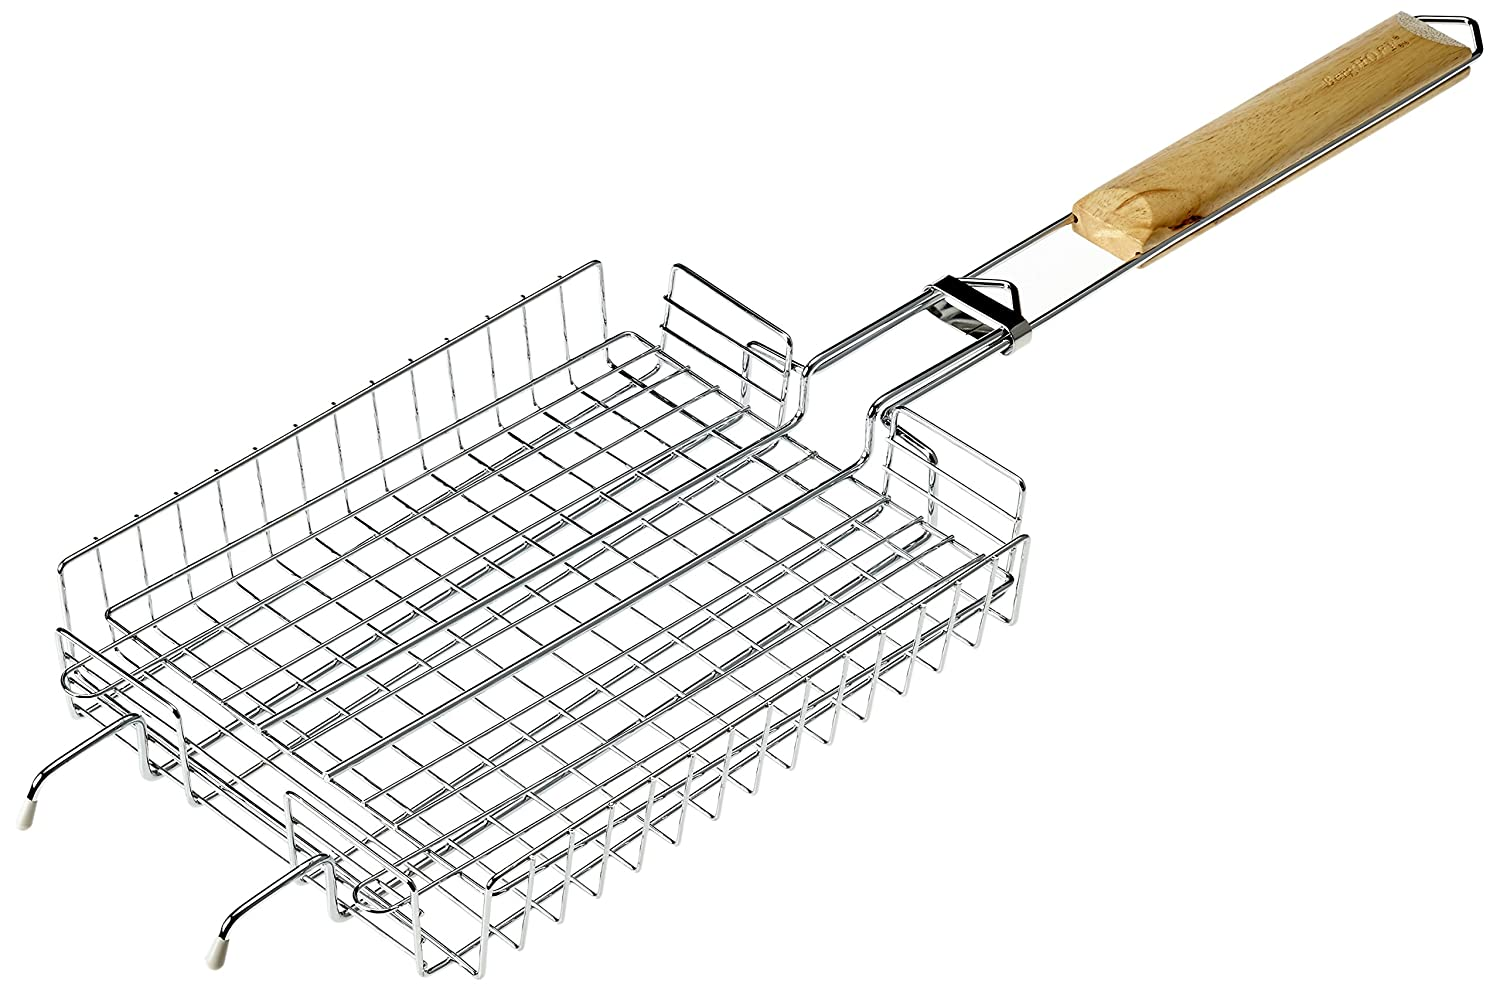 BergHOFF 63.5 x 21 cm Non-Stick Universal BBQ Grilling Basket with Long Oak Wood Handle - Silver 4490302